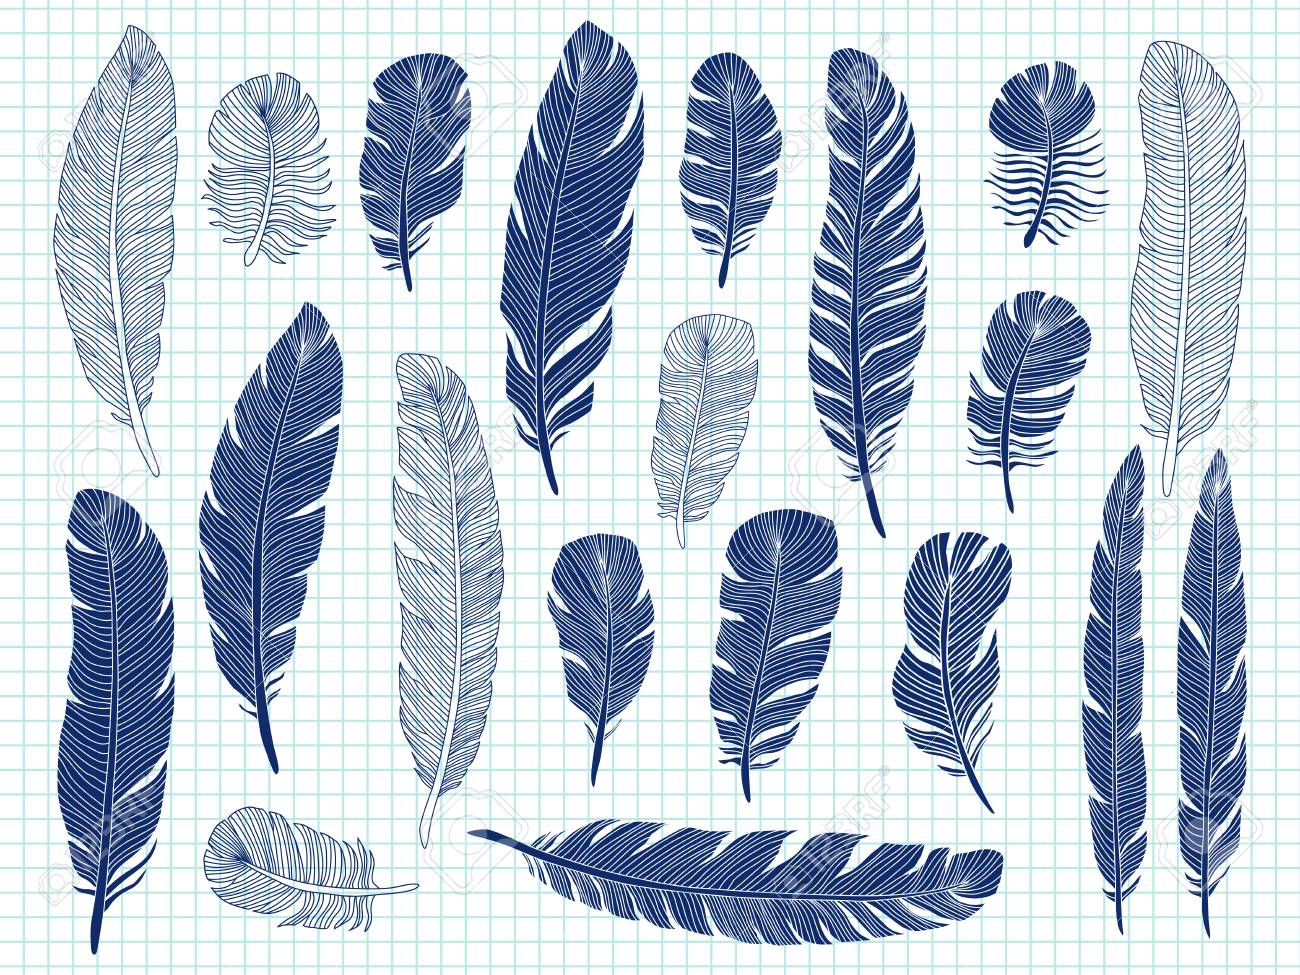 Ballpoint Pen Drawing Of Bird Feathers Big Set On Notebook Background